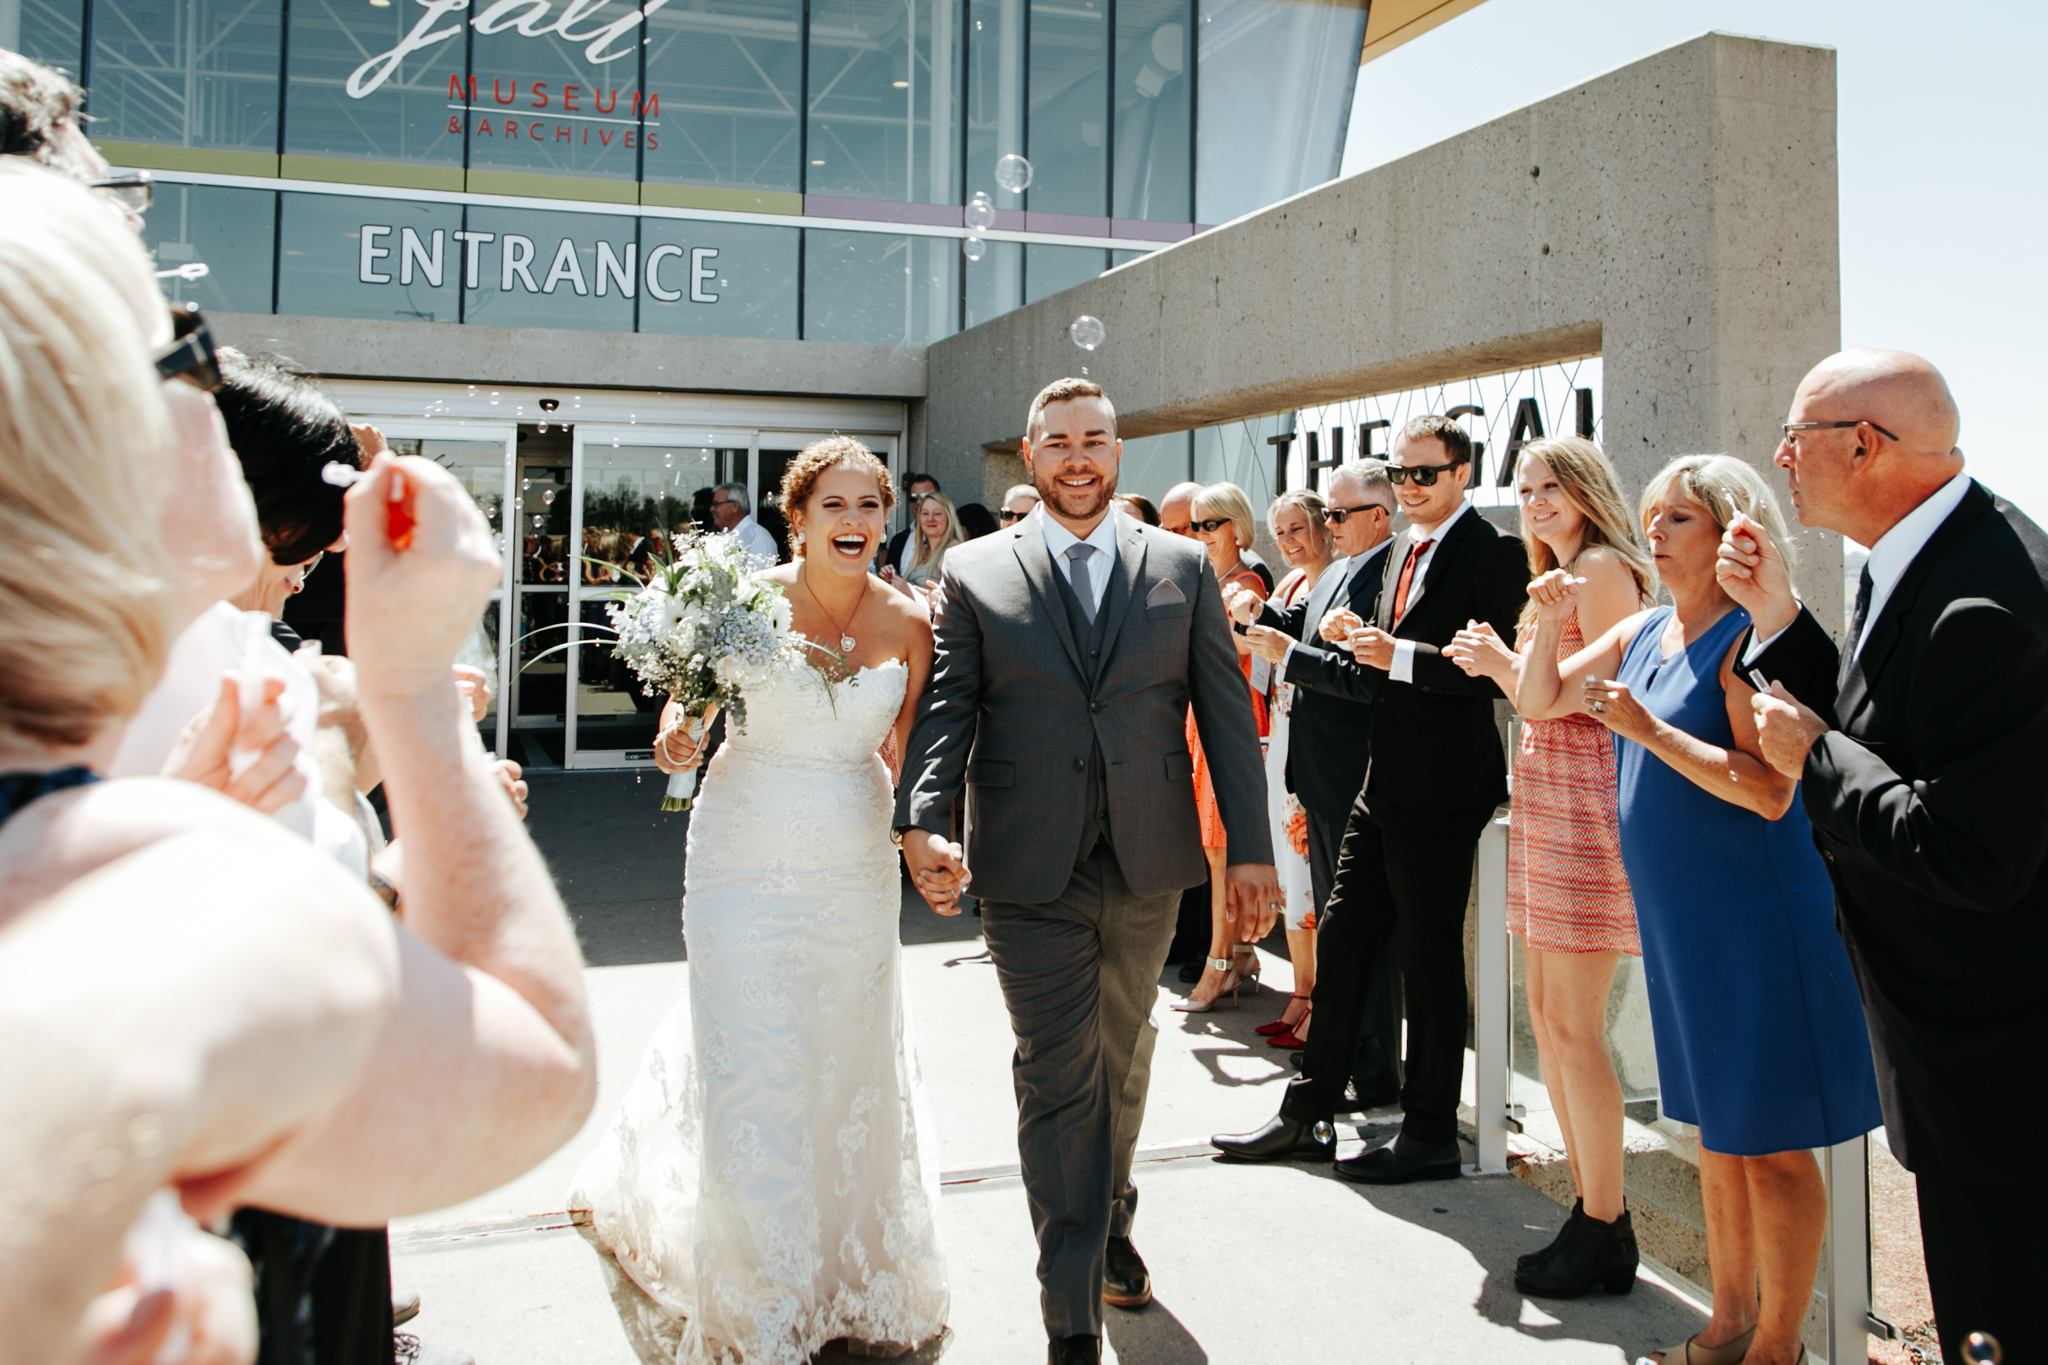 lethbridge-wedding-photographer-love-and-be-loved-photography-trent-danielle-galt-reception-picture-image-photo-70.jpg